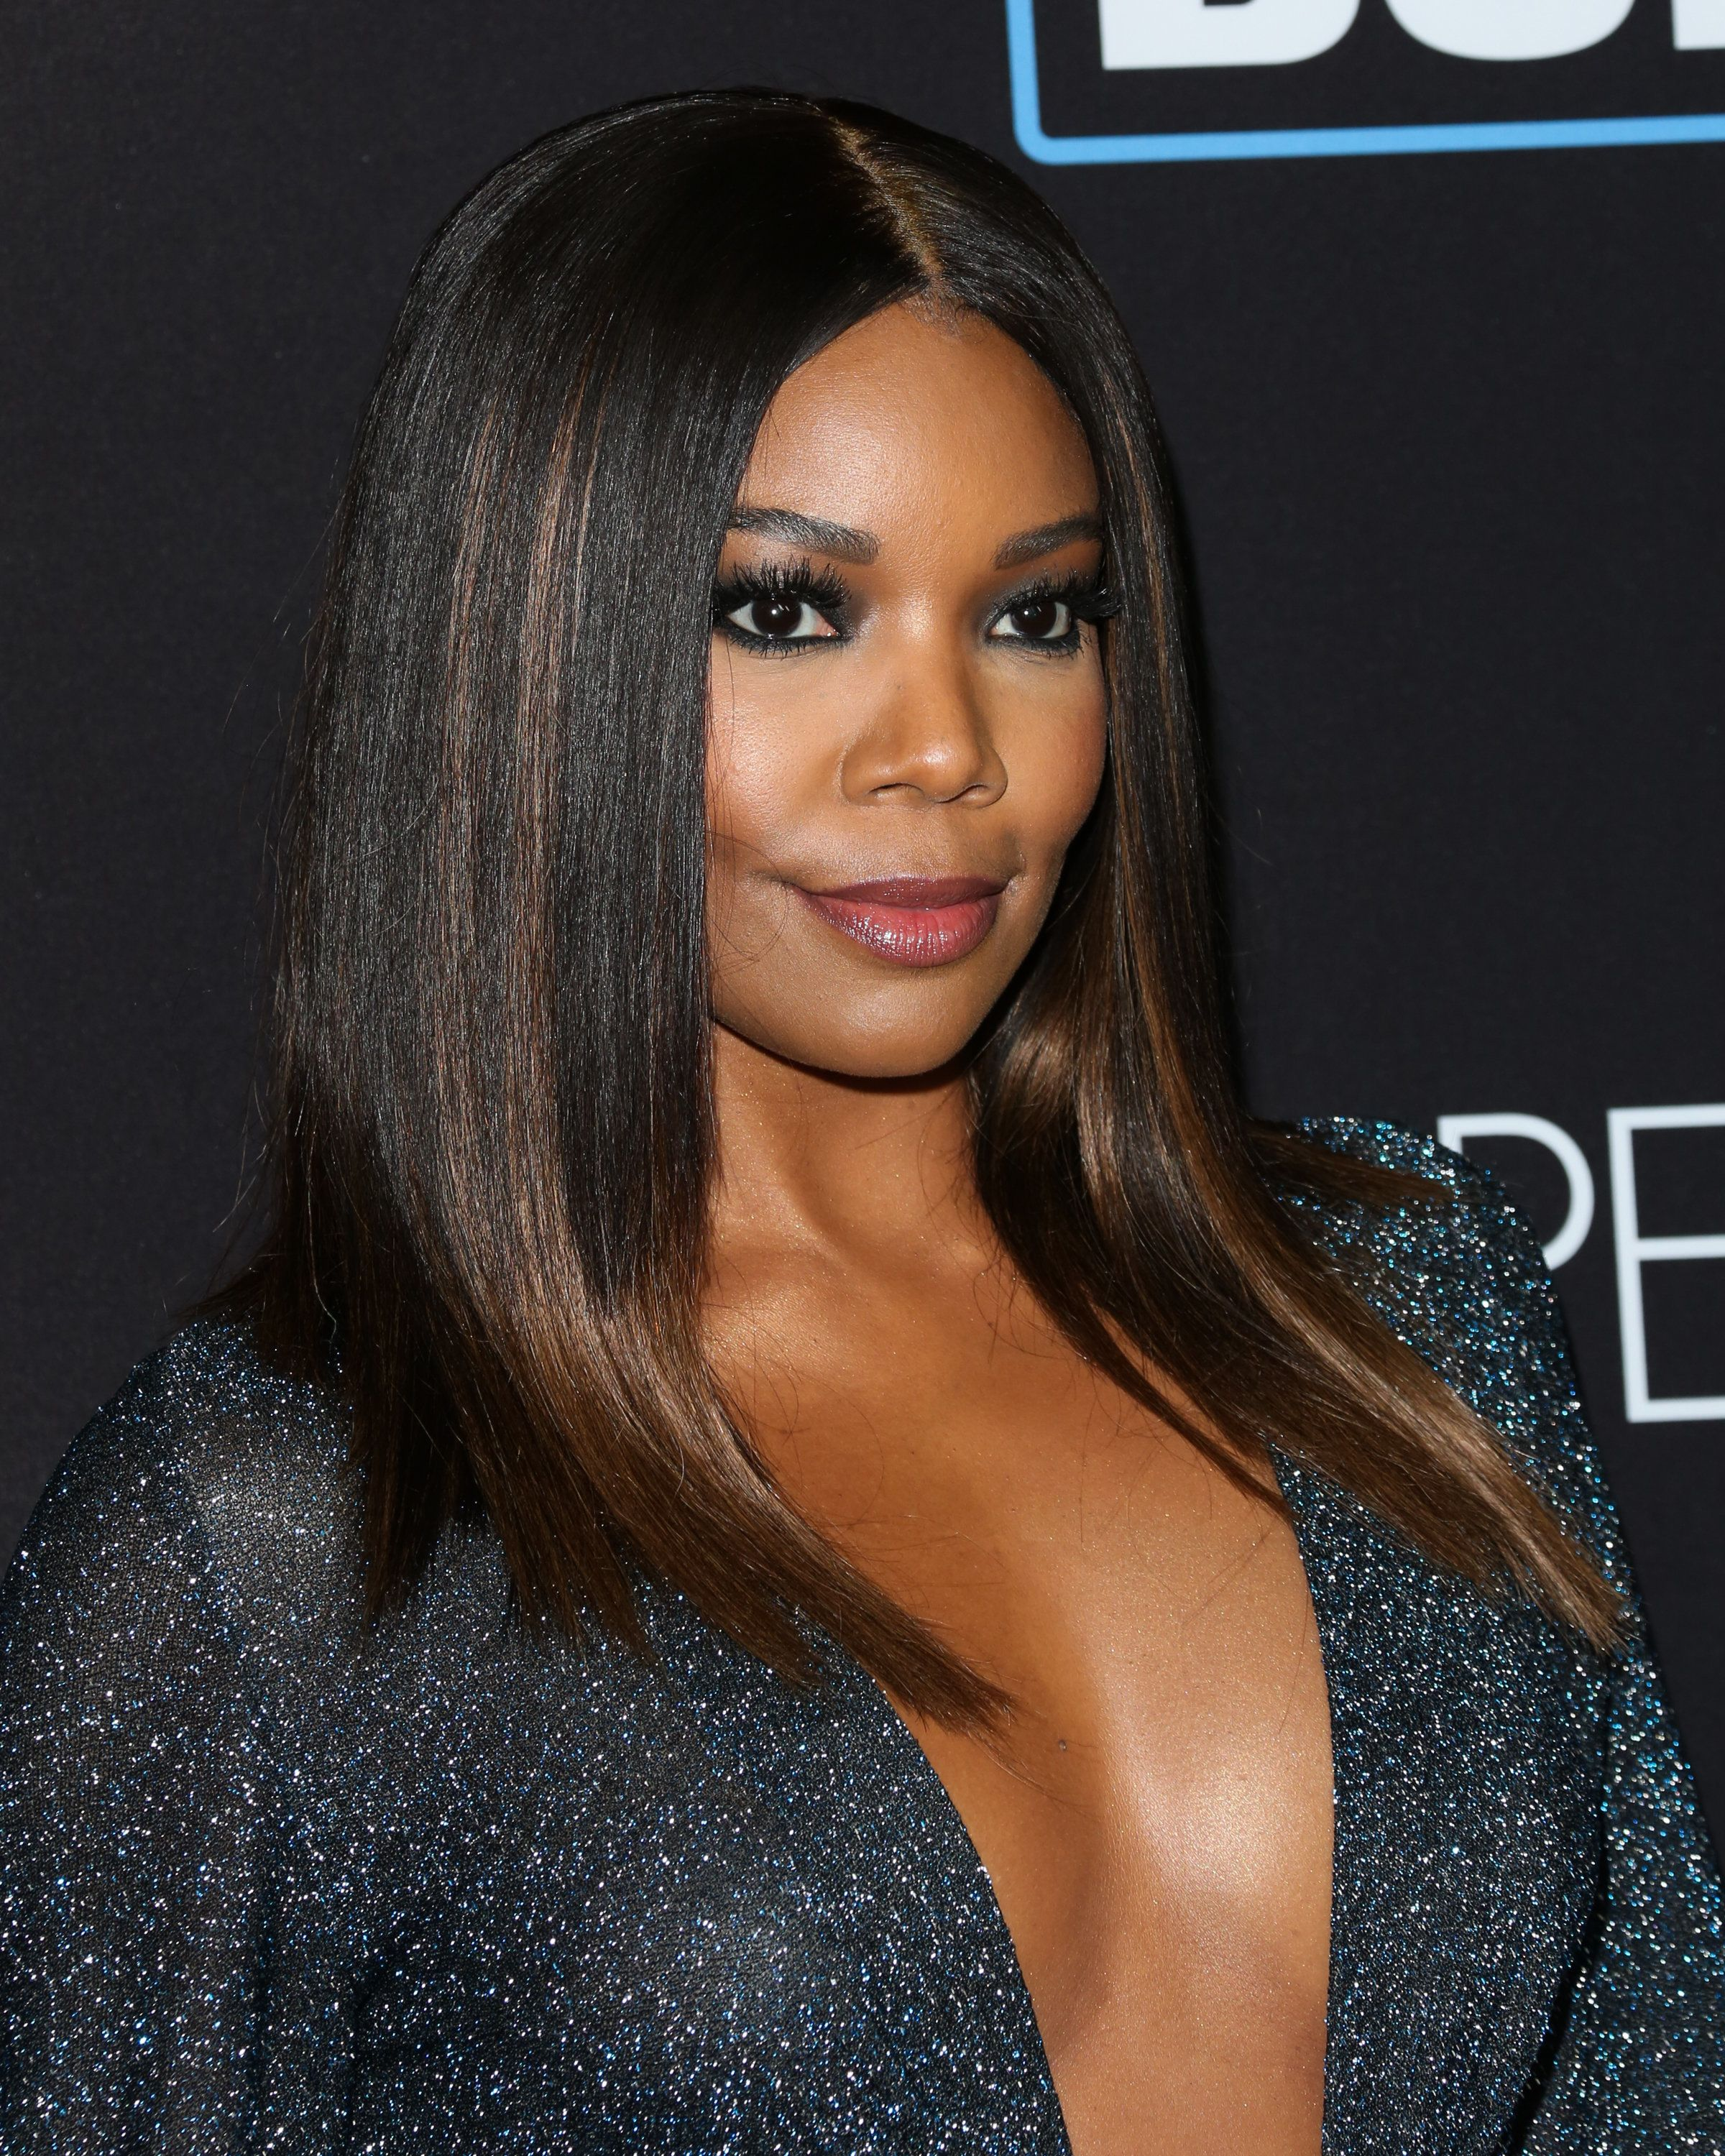 Gabrielle Union attends the premiere of 'Sleepless' at the Regal LA Live Stadium 14 on January 5, 2017 in Los Angeles, Califo